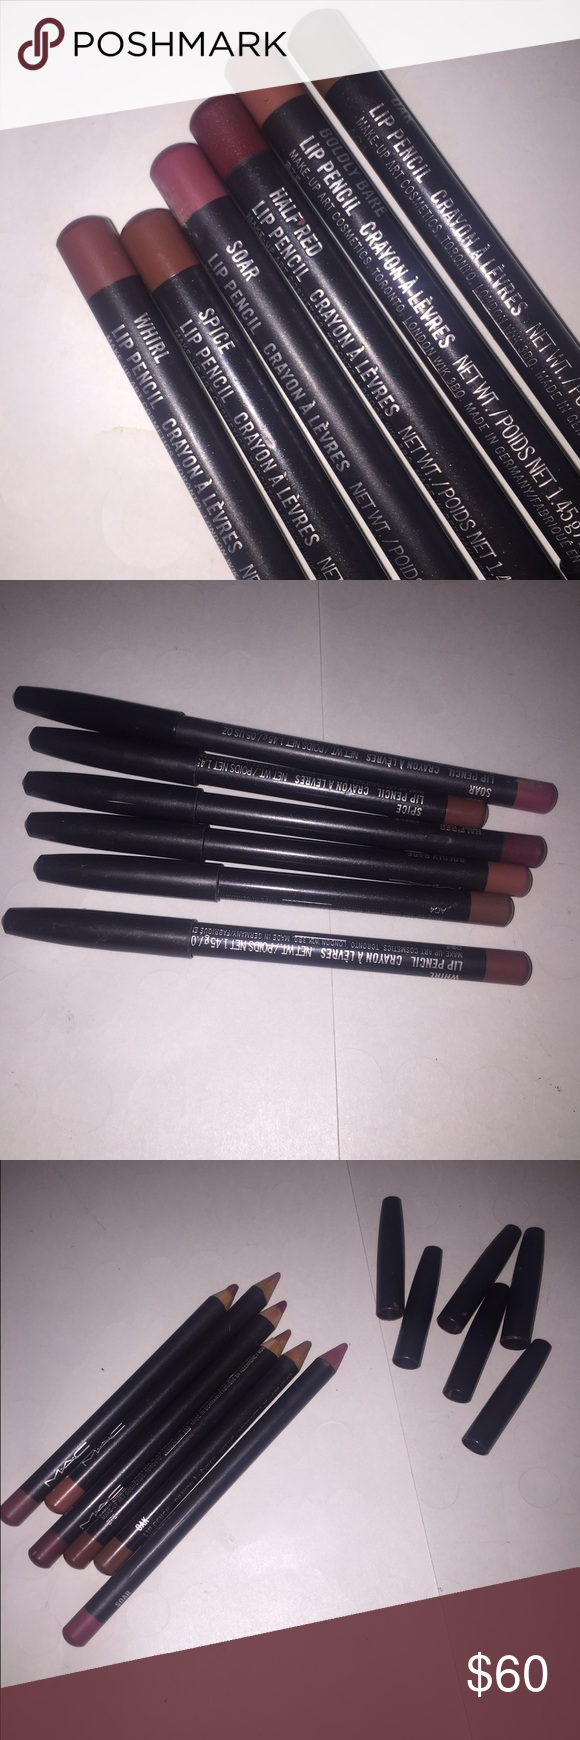 MAC 6 Lipliner Bundle MAC lipliners in a bundle sale. Soar, Whirl, Oak, Half Red, Spice, and Boldly Bare. These have been used but are clean and sanitized for their new owner. Theres about 3/4 left of each pencil, which is quite a bit. All very popular MAC liners. Authentic. MAC Cosmetics Makeup Lip Liner